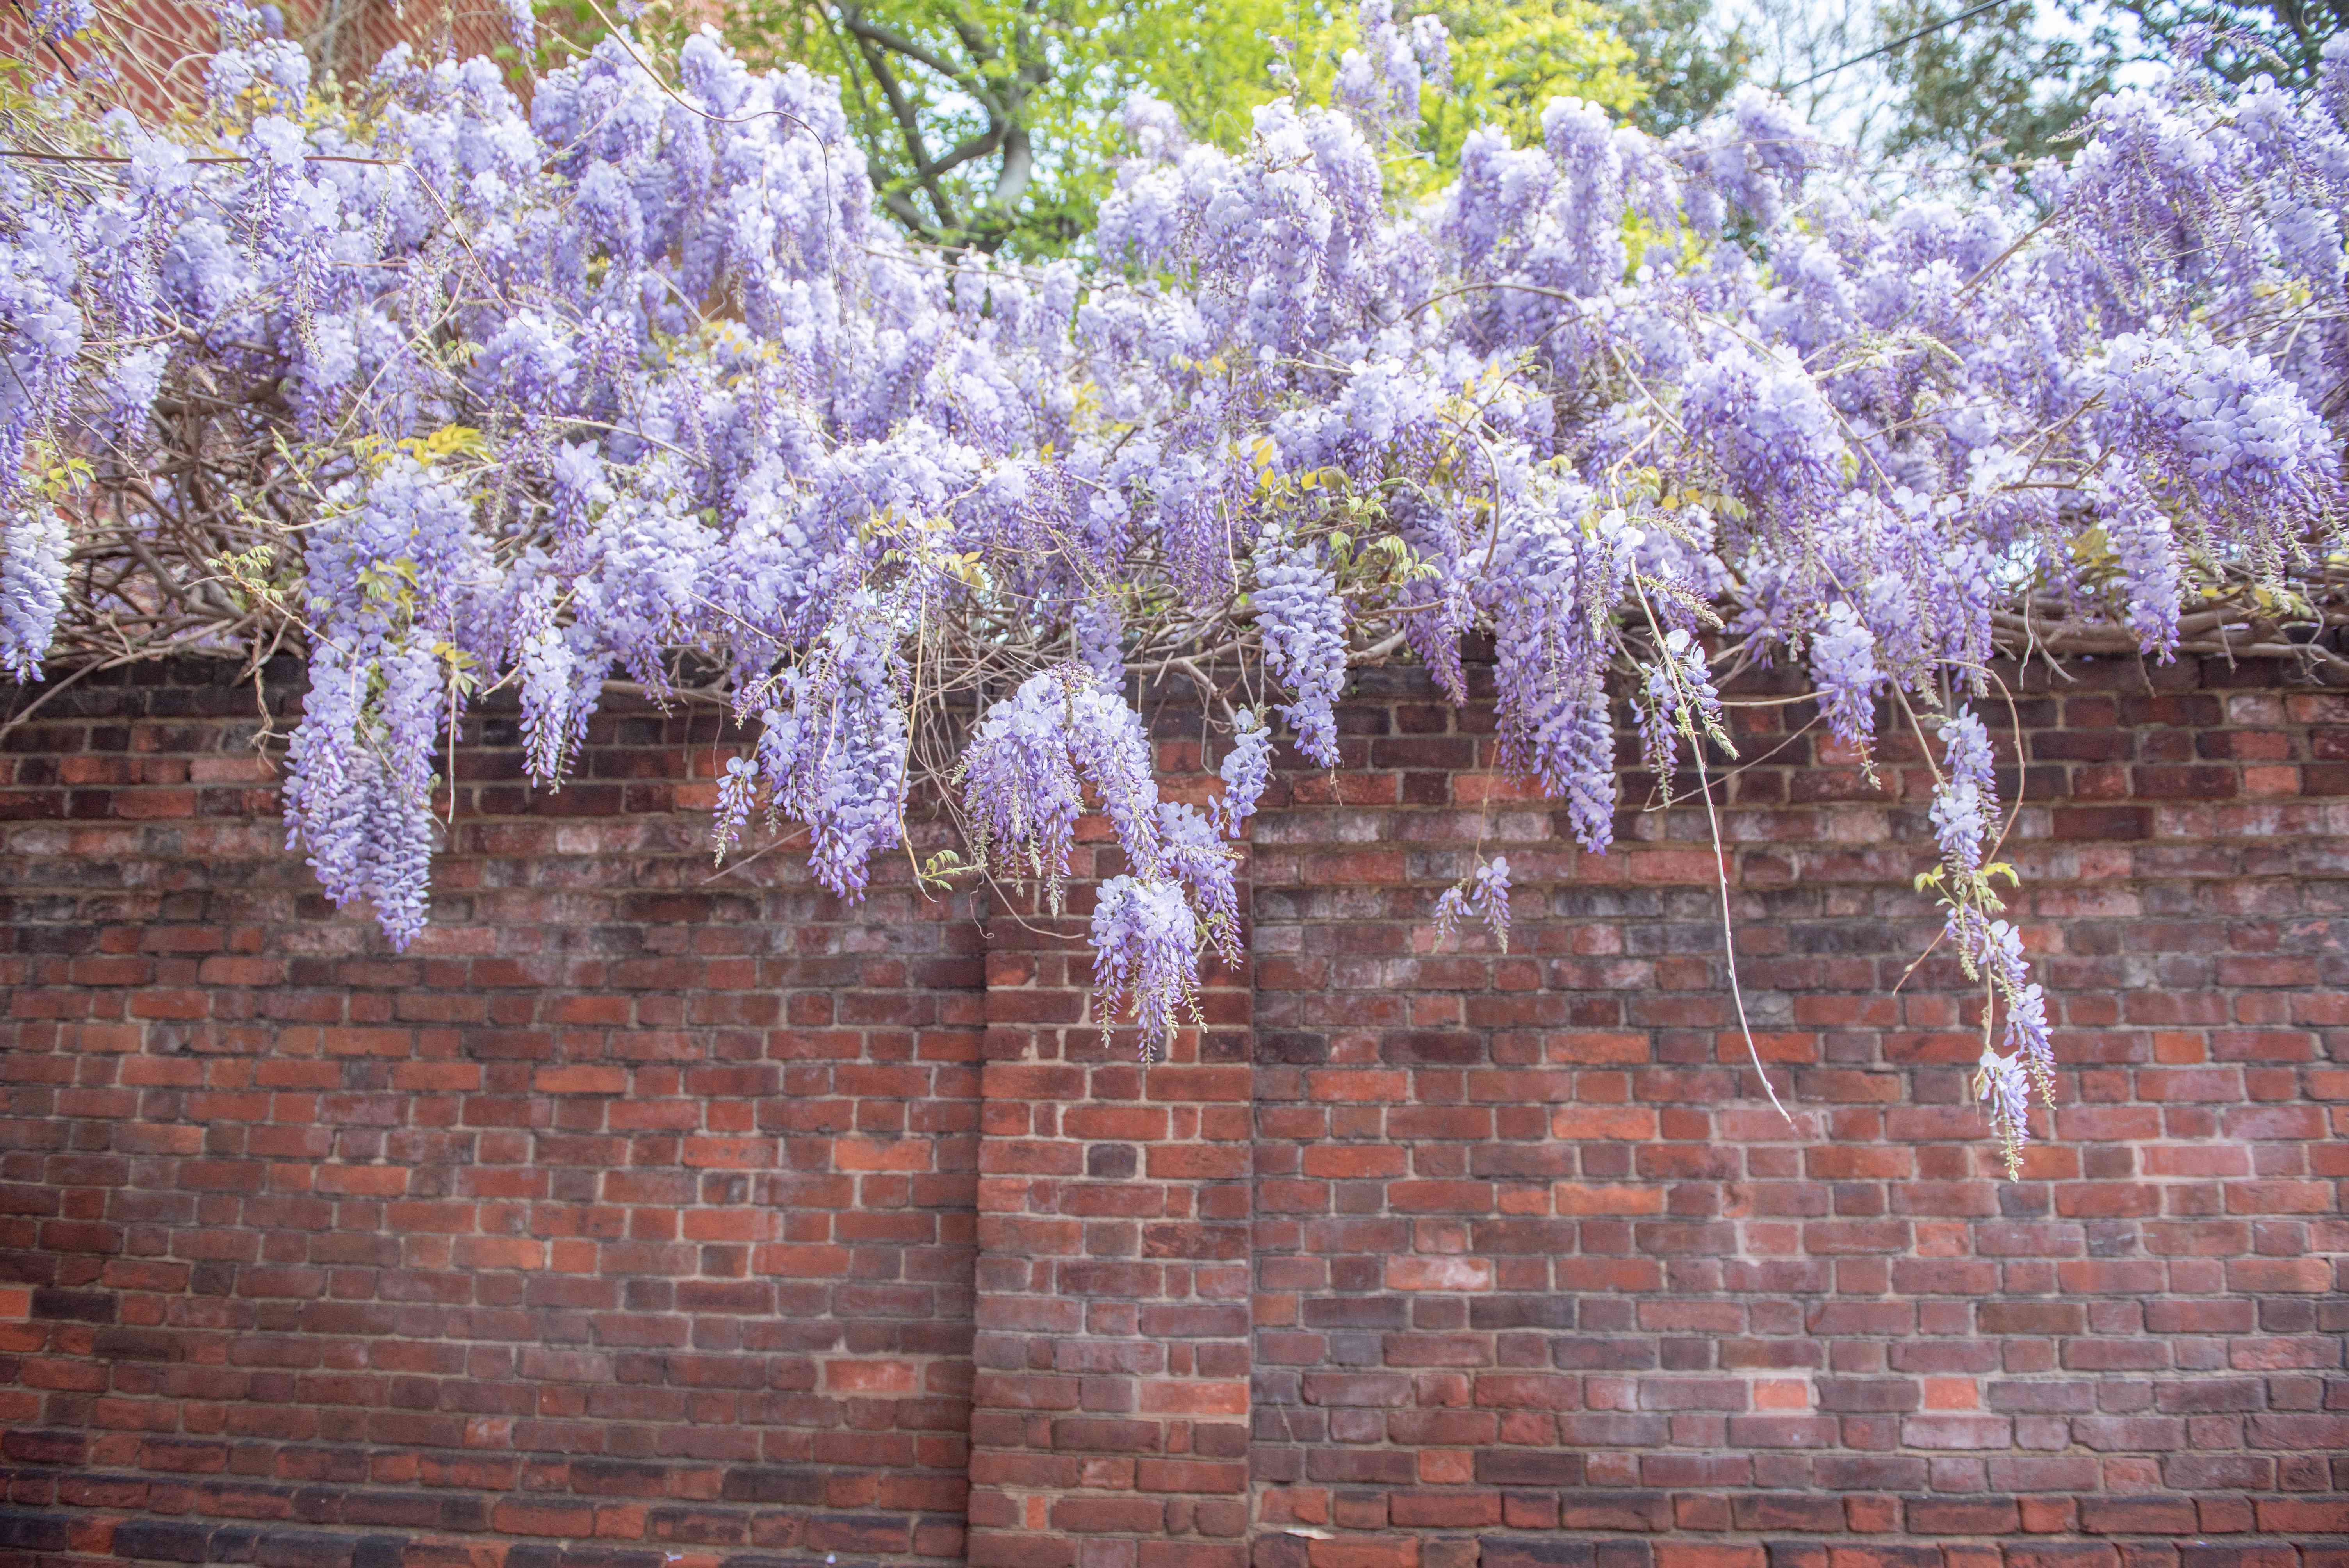 Chinese wisteria growing over a wall